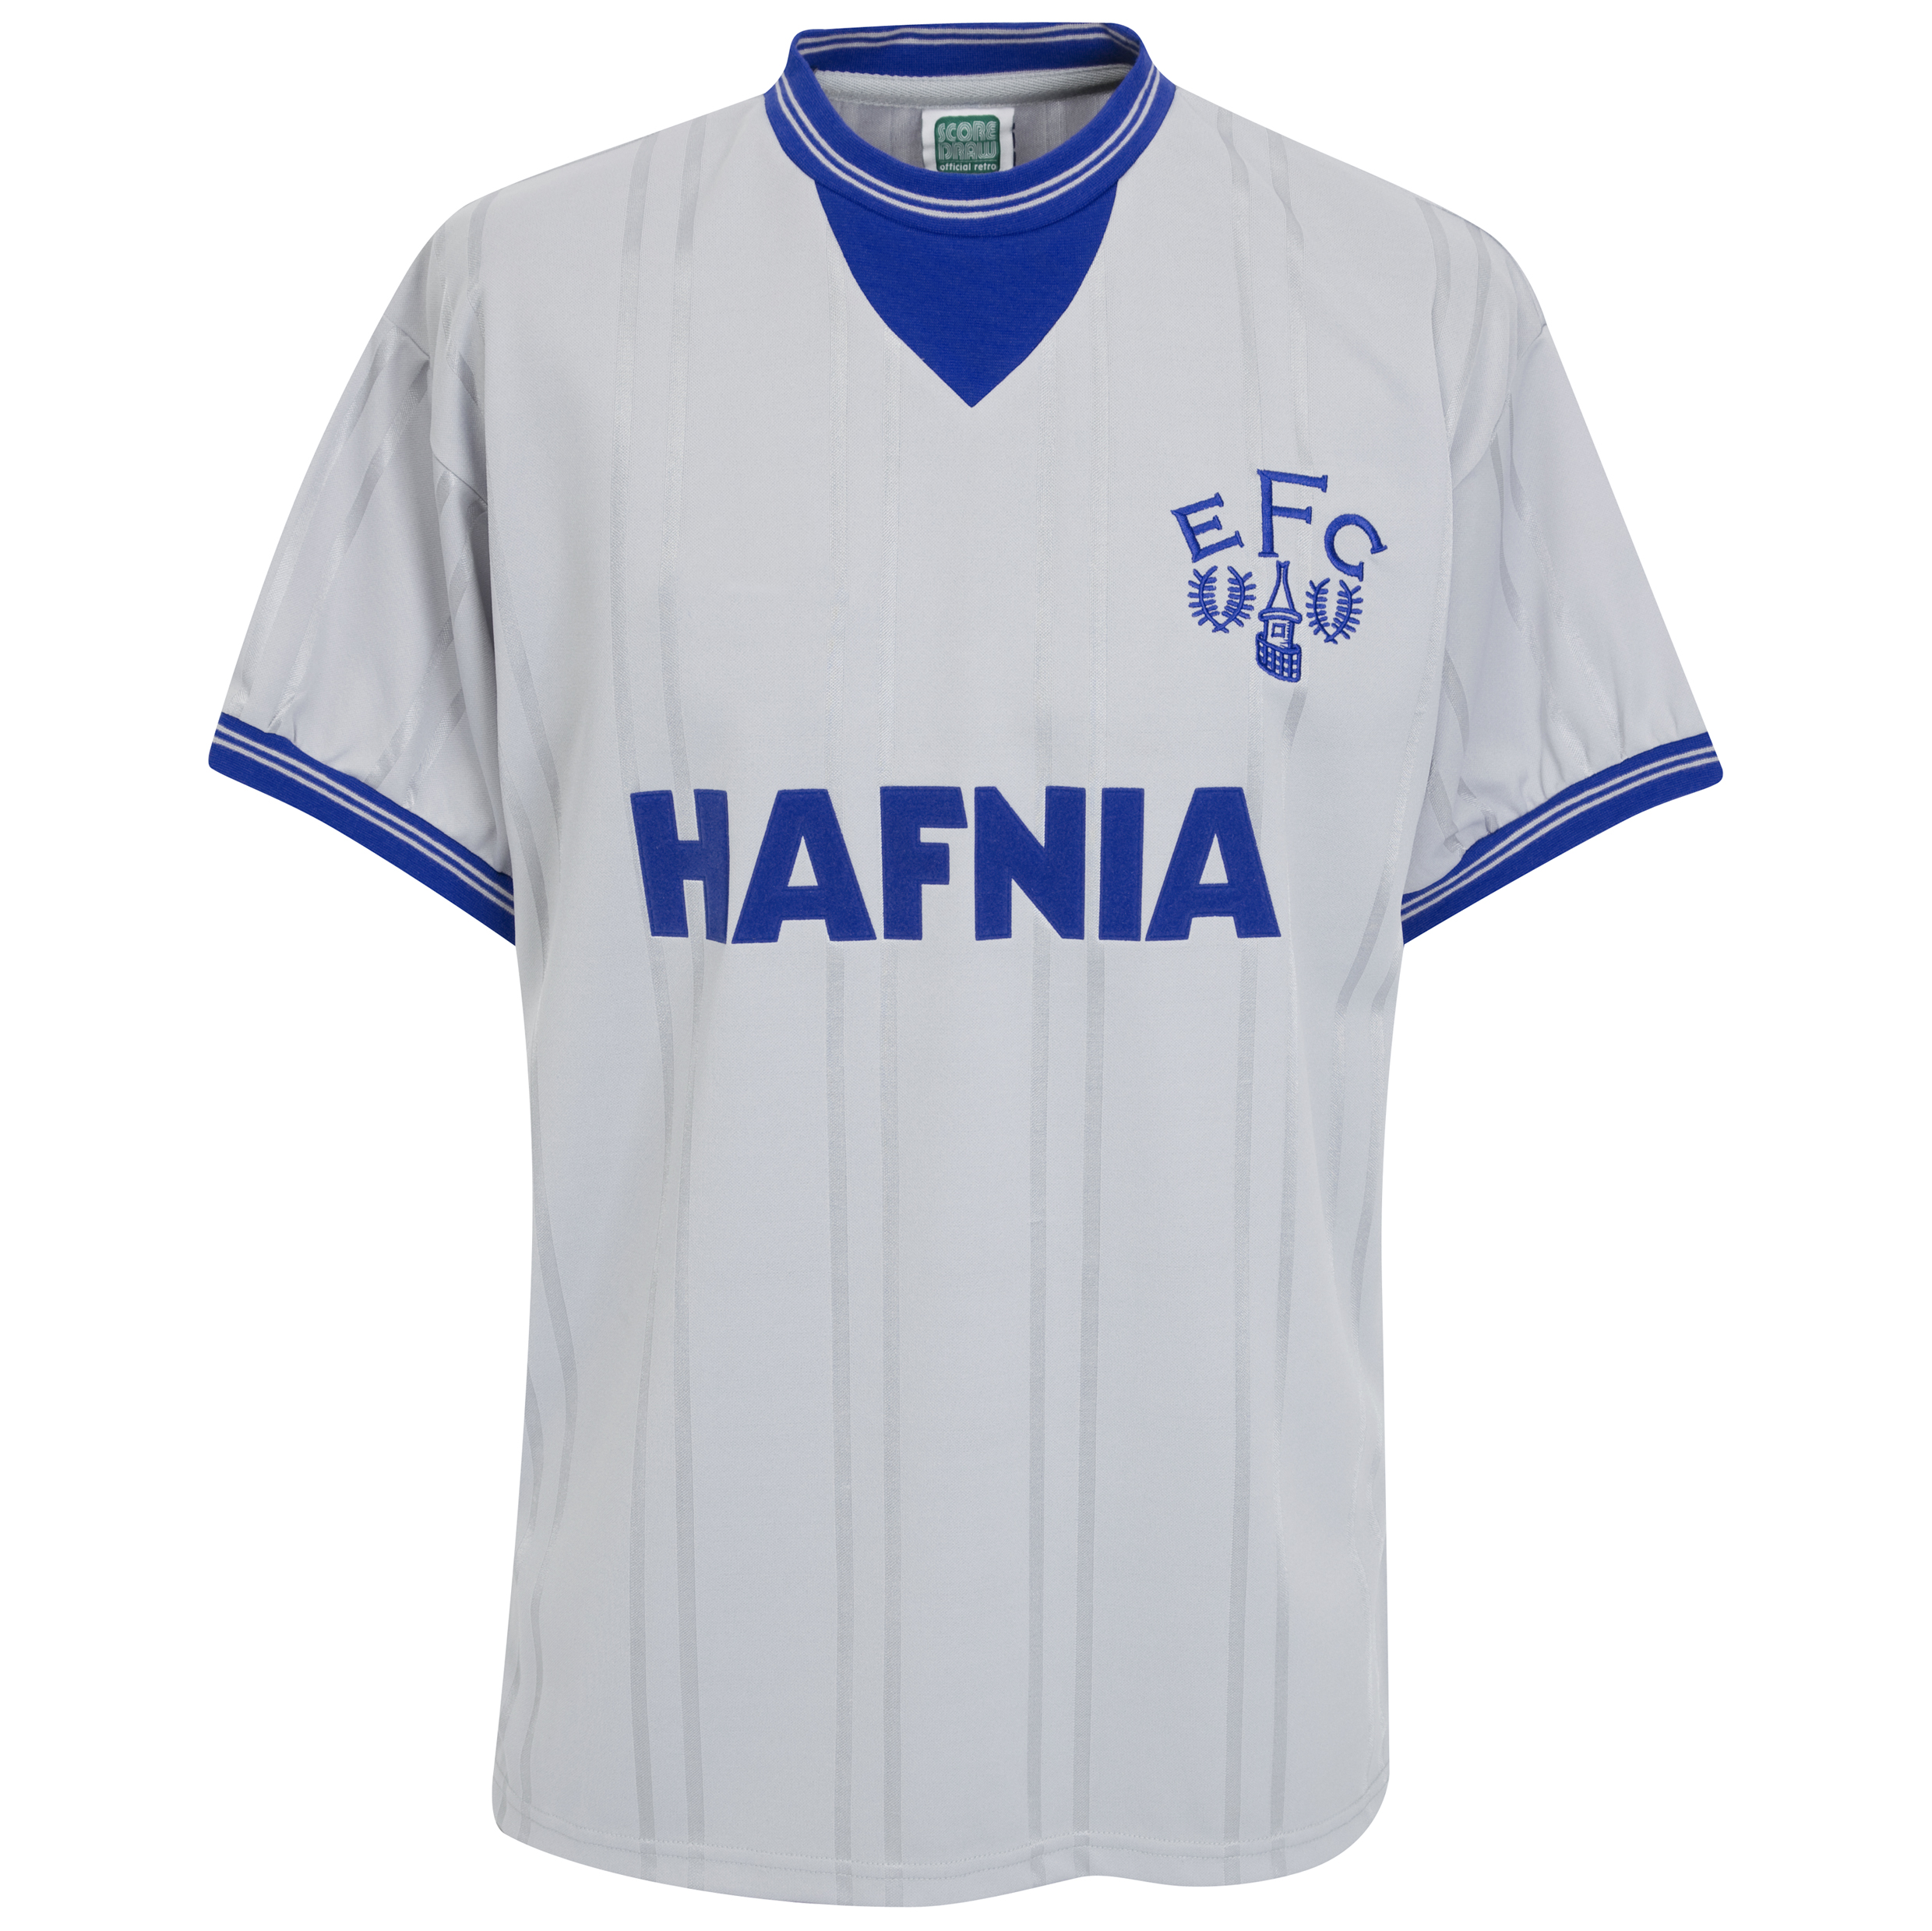 Everton 1984 Away Shirt - Grey